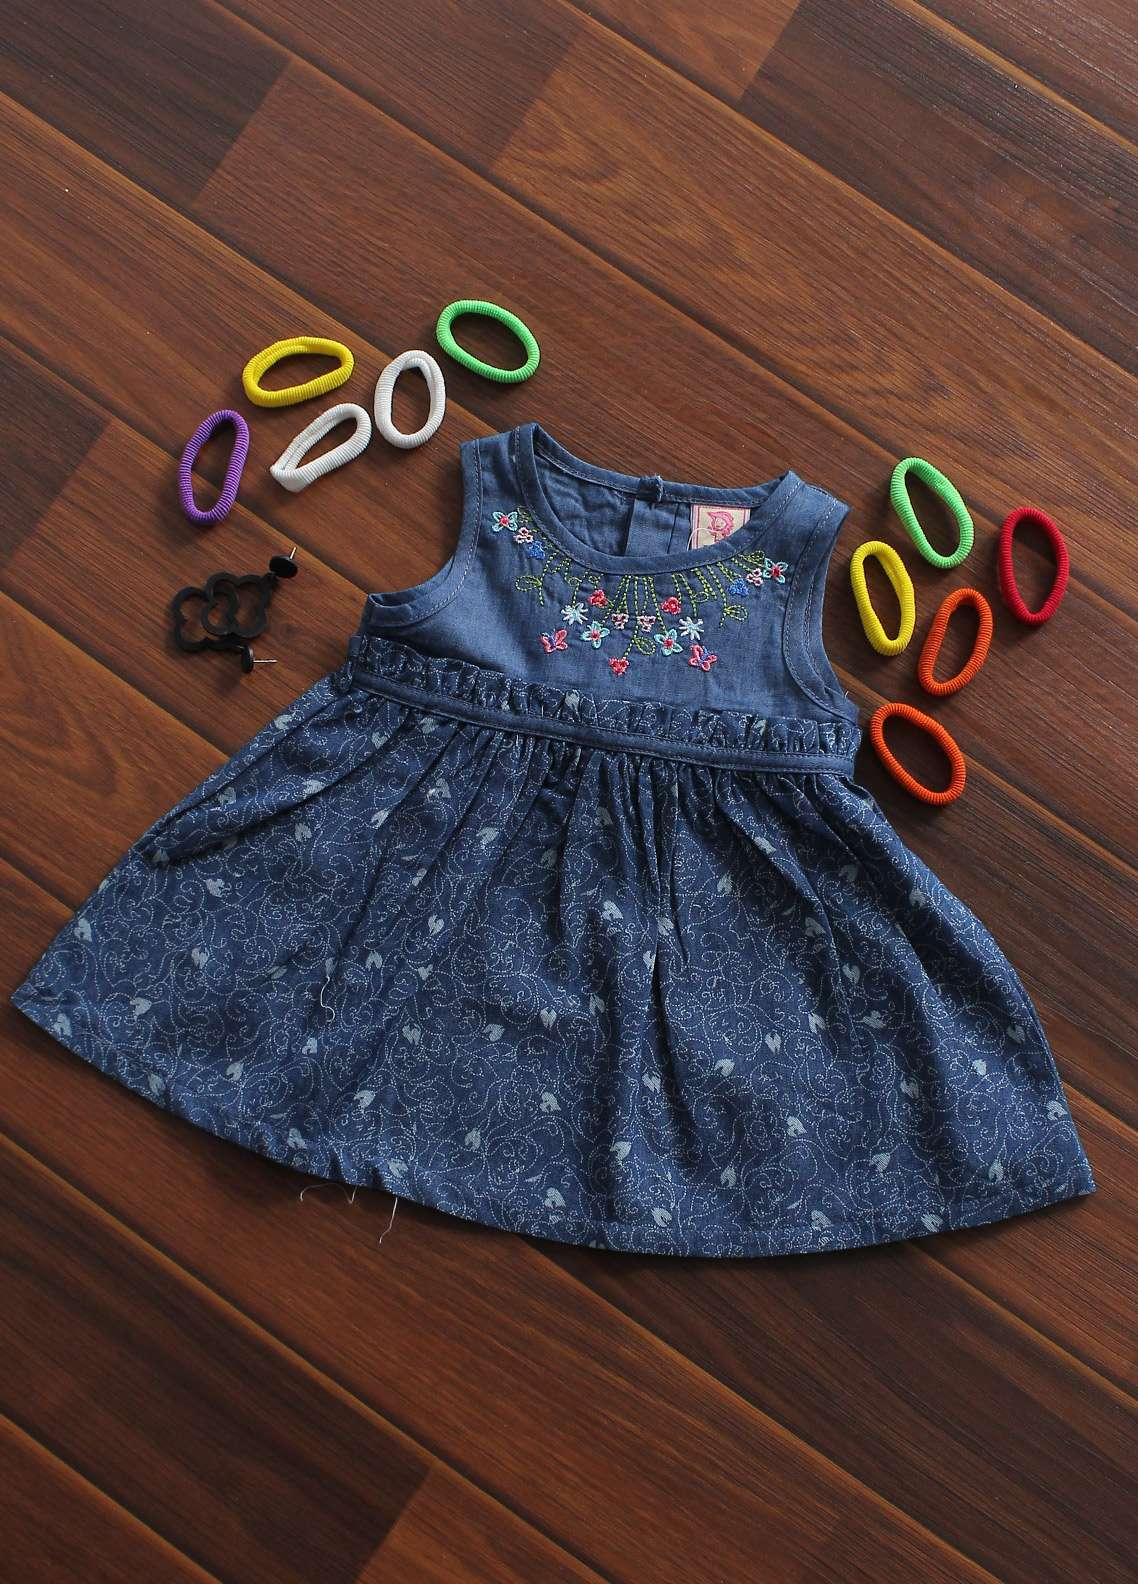 Sanaulla Exclusive Range Cotton Fancy Frocks for Girls - A360 Blue